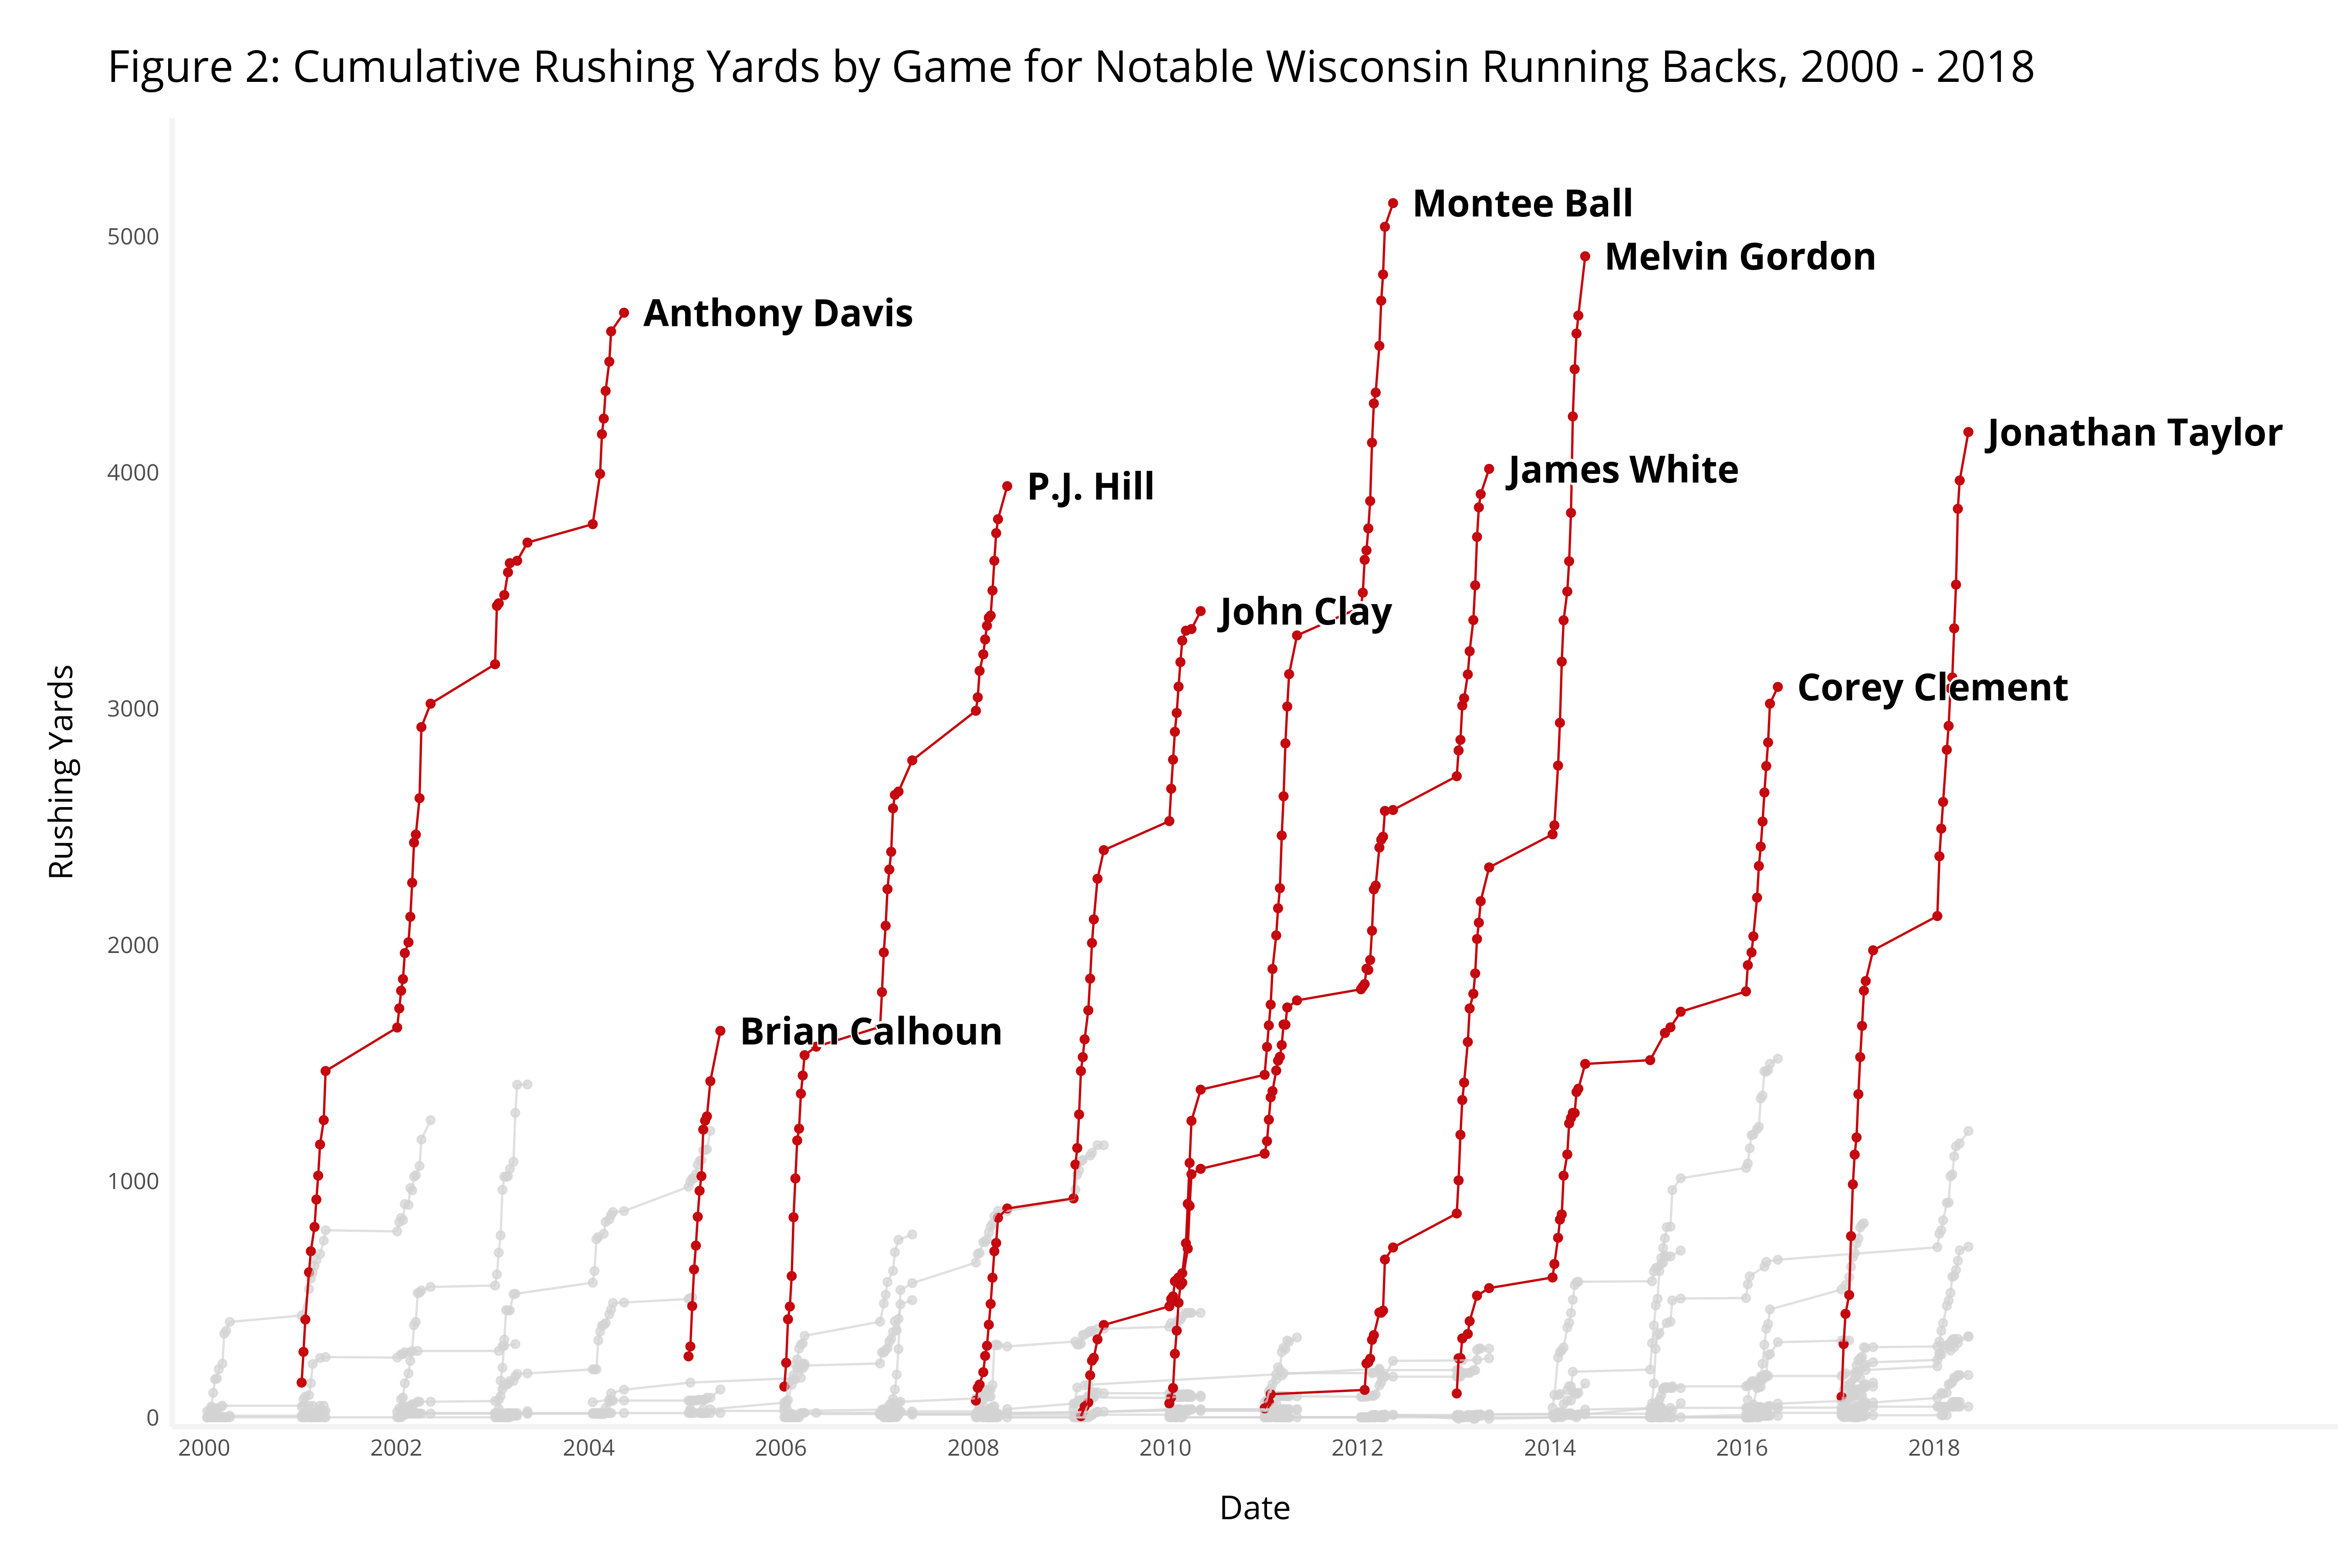 Data Do Over Backs Dominance Of >> The Dominance Of Jonathan Taylor Wisconsin Rushers In Context